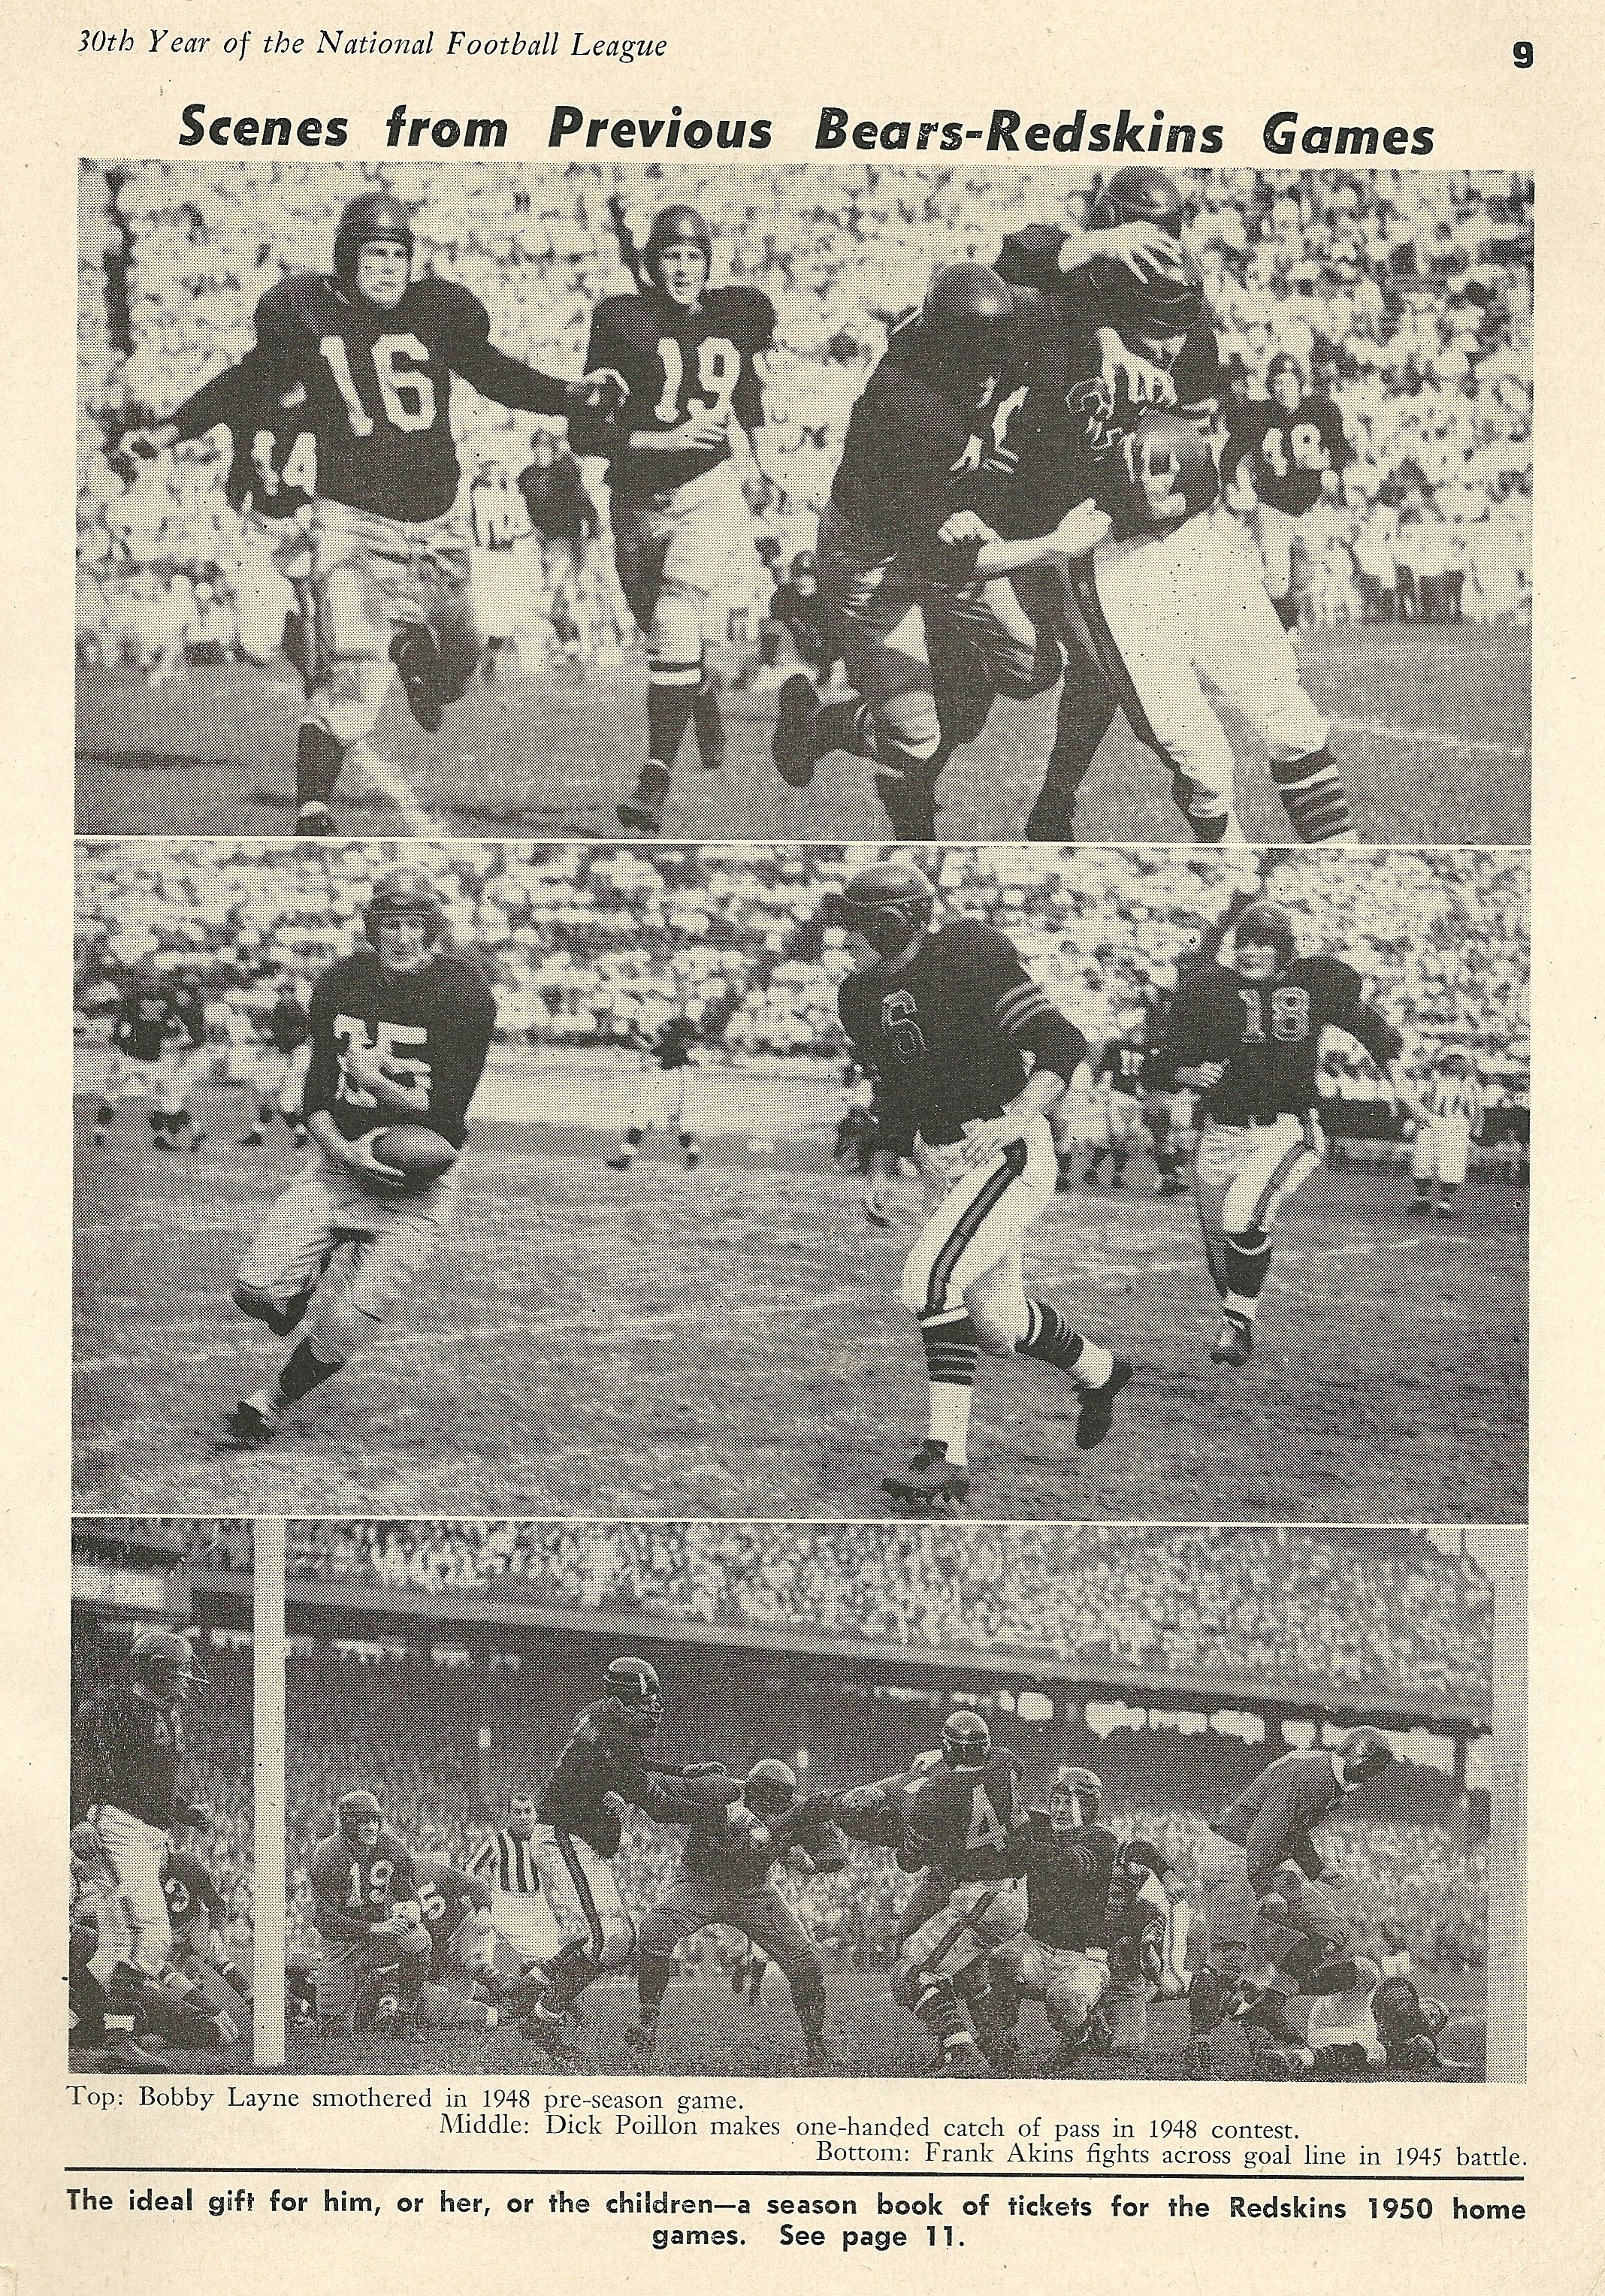 1948 Redskins and Bears game